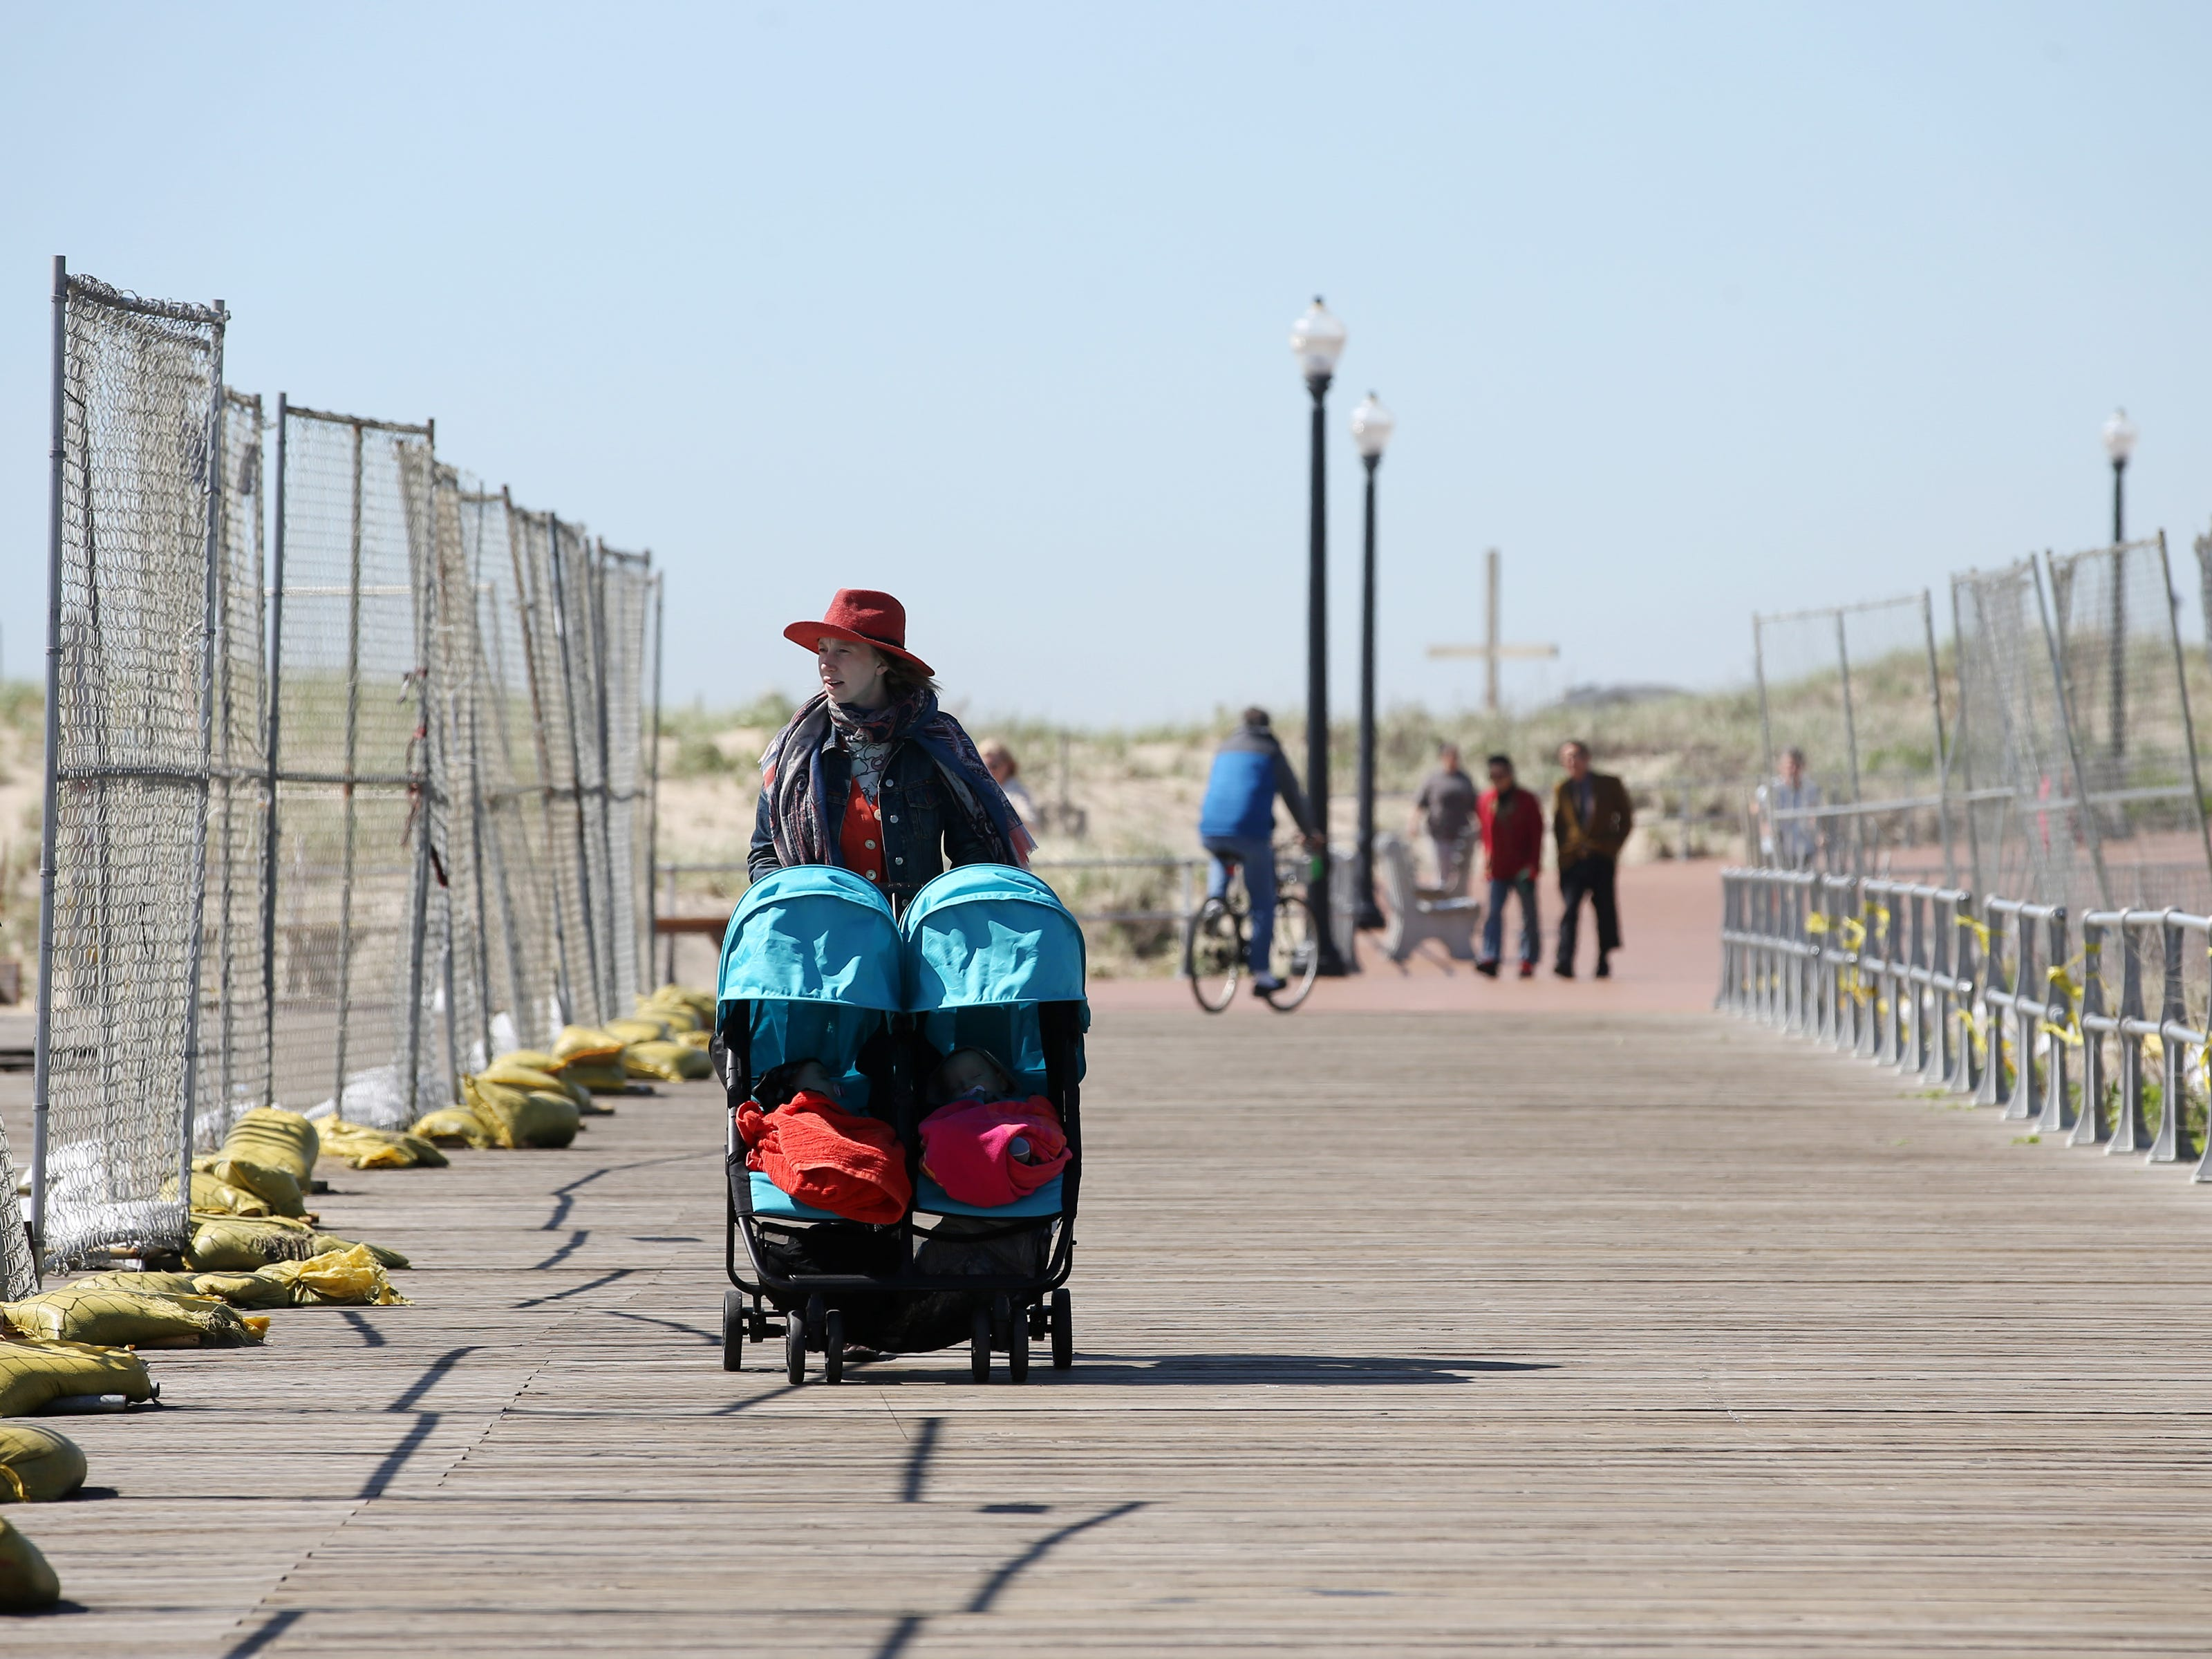 Megan Sipe of Brooklyn, New York walks along the boardwalk with her 8-month-old twins, Lola and Marlon Santiago, and looks at the remains of last month's beachfront pavilion fire during a sunny and mild morning in Ocean Grove, NJ Monday, May 6, 2019.